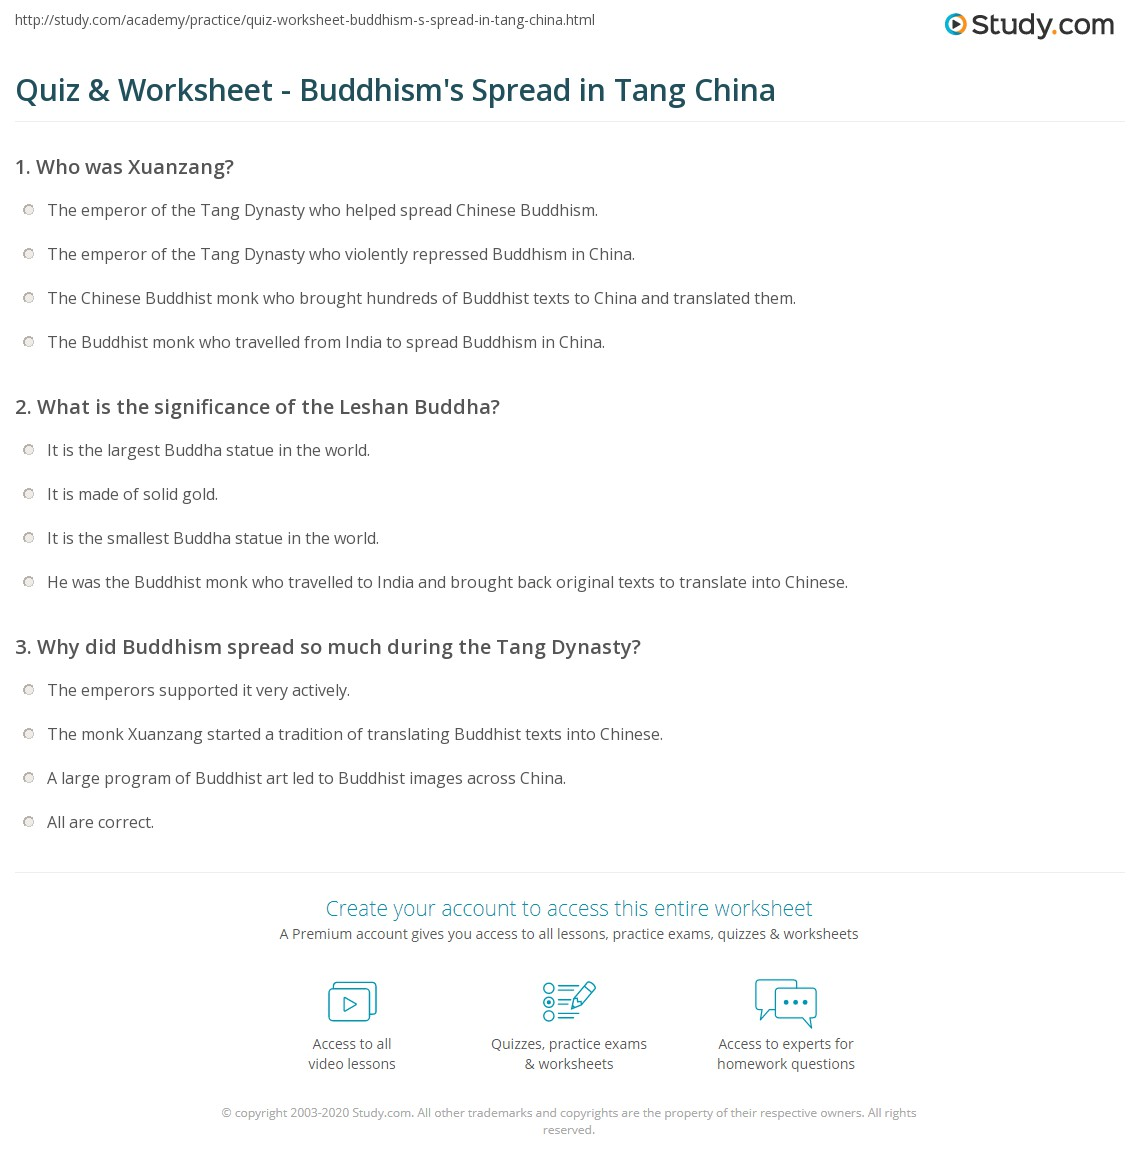 Quiz & Worksheet - Buddhism's Spread in Tang China | Study.com